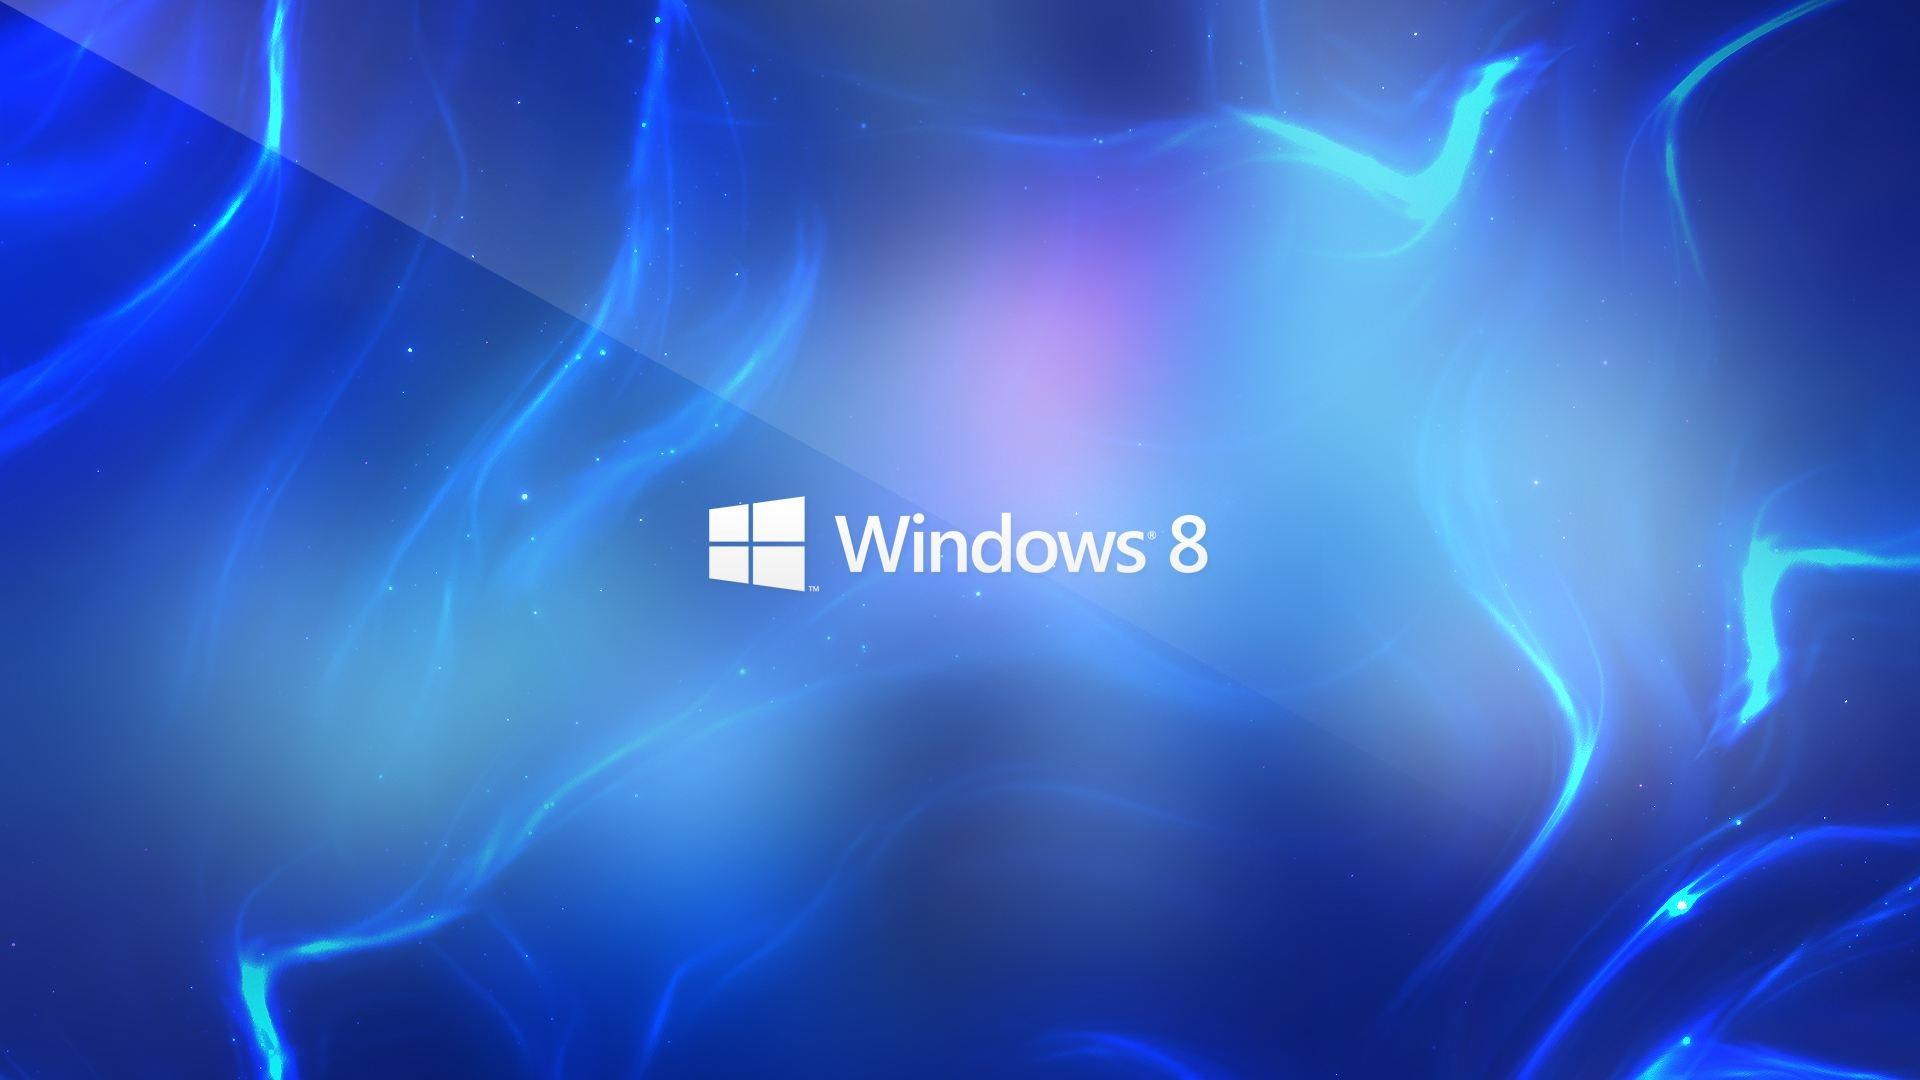 windows 8 hd desktop wallpapers 42 wallpapers